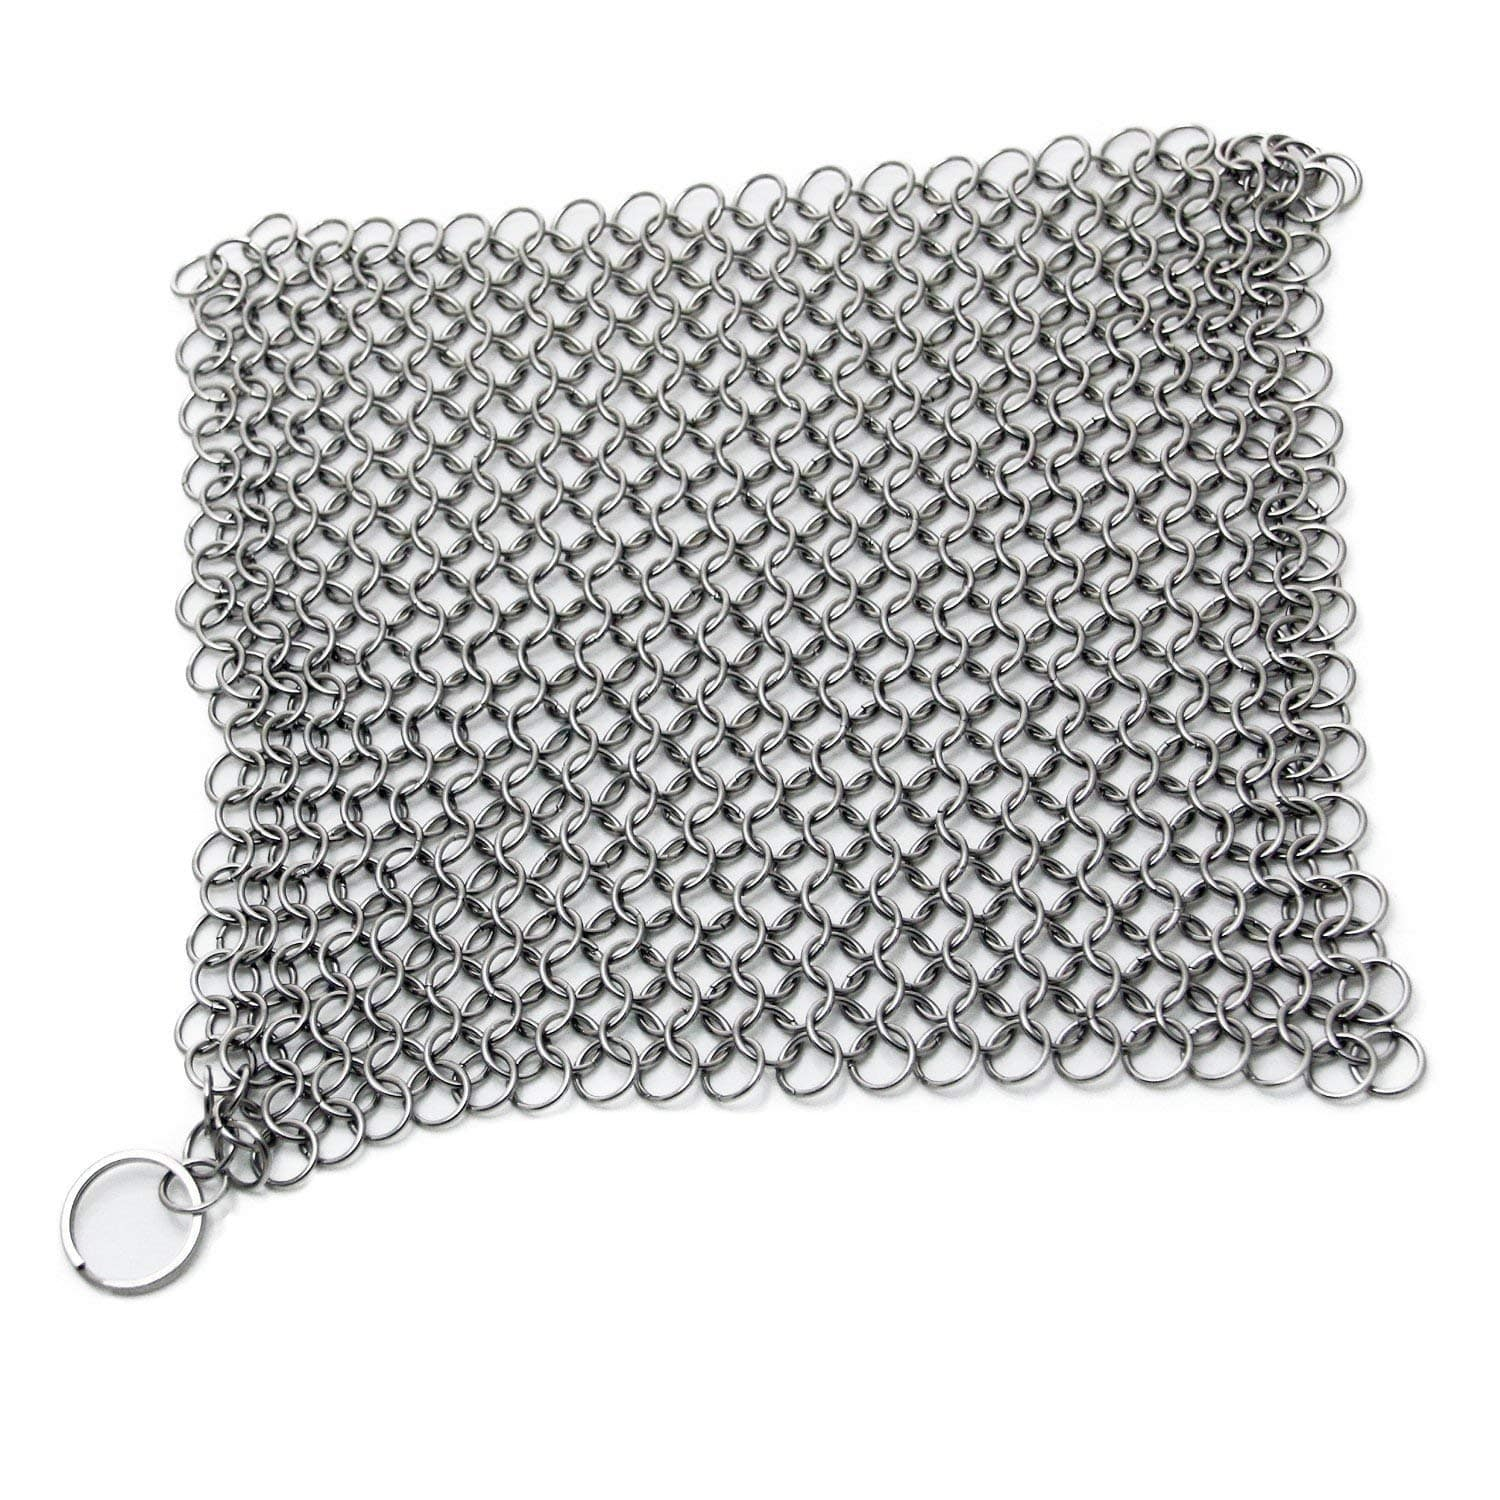 """8""""x6"""" Stainless Steel 316L Cast Iron Cleaner Chainmail Scrubber for Cast Iron Pan $6.49 AC FS Amazon Prime"""